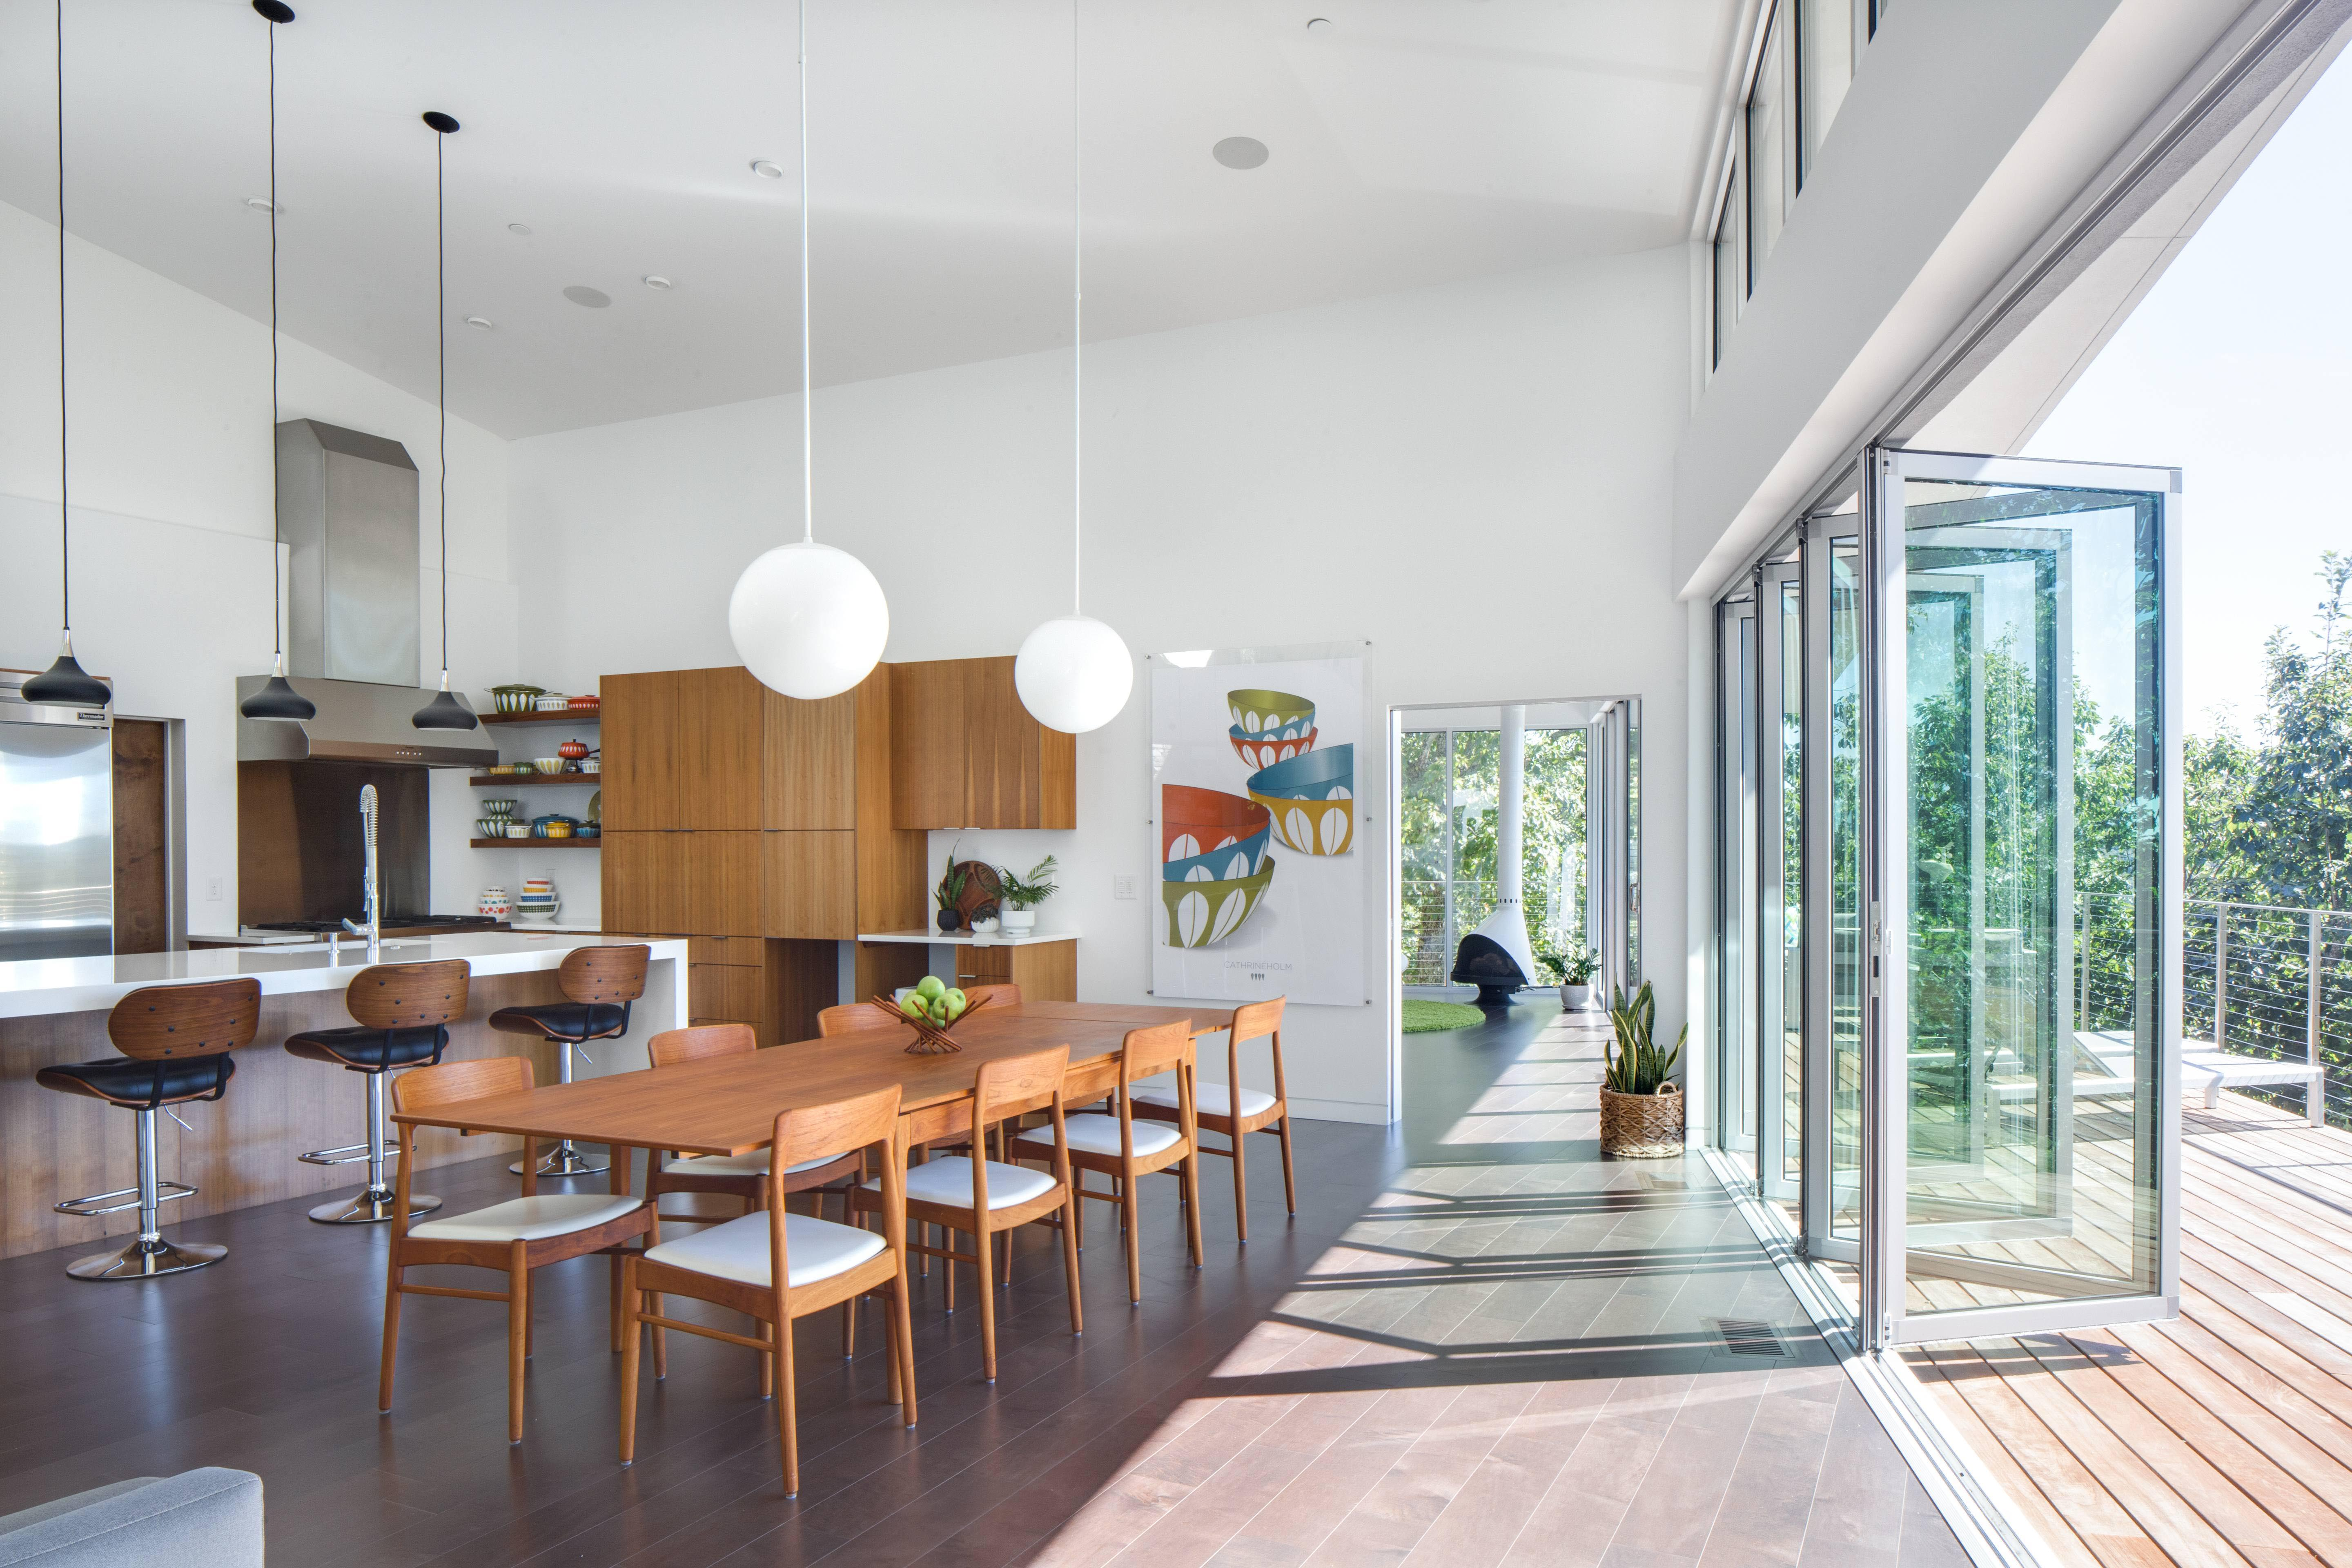 renovated-mid-century-modern-interior-with-opening-glass-walls